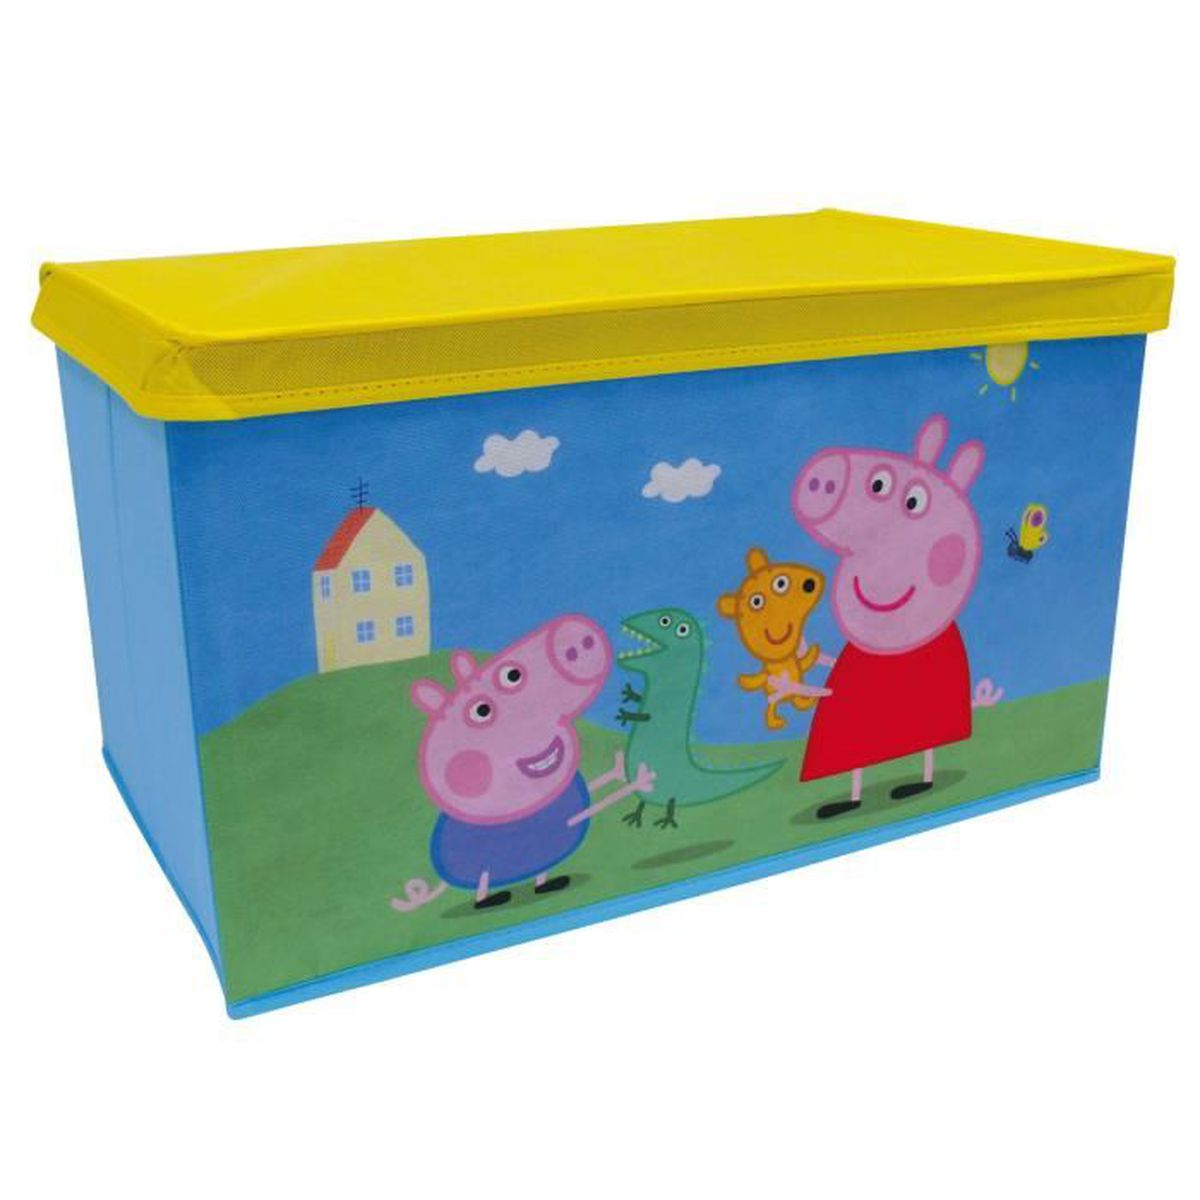 banc coffre jouets en tissu pliable peppa pig achat. Black Bedroom Furniture Sets. Home Design Ideas